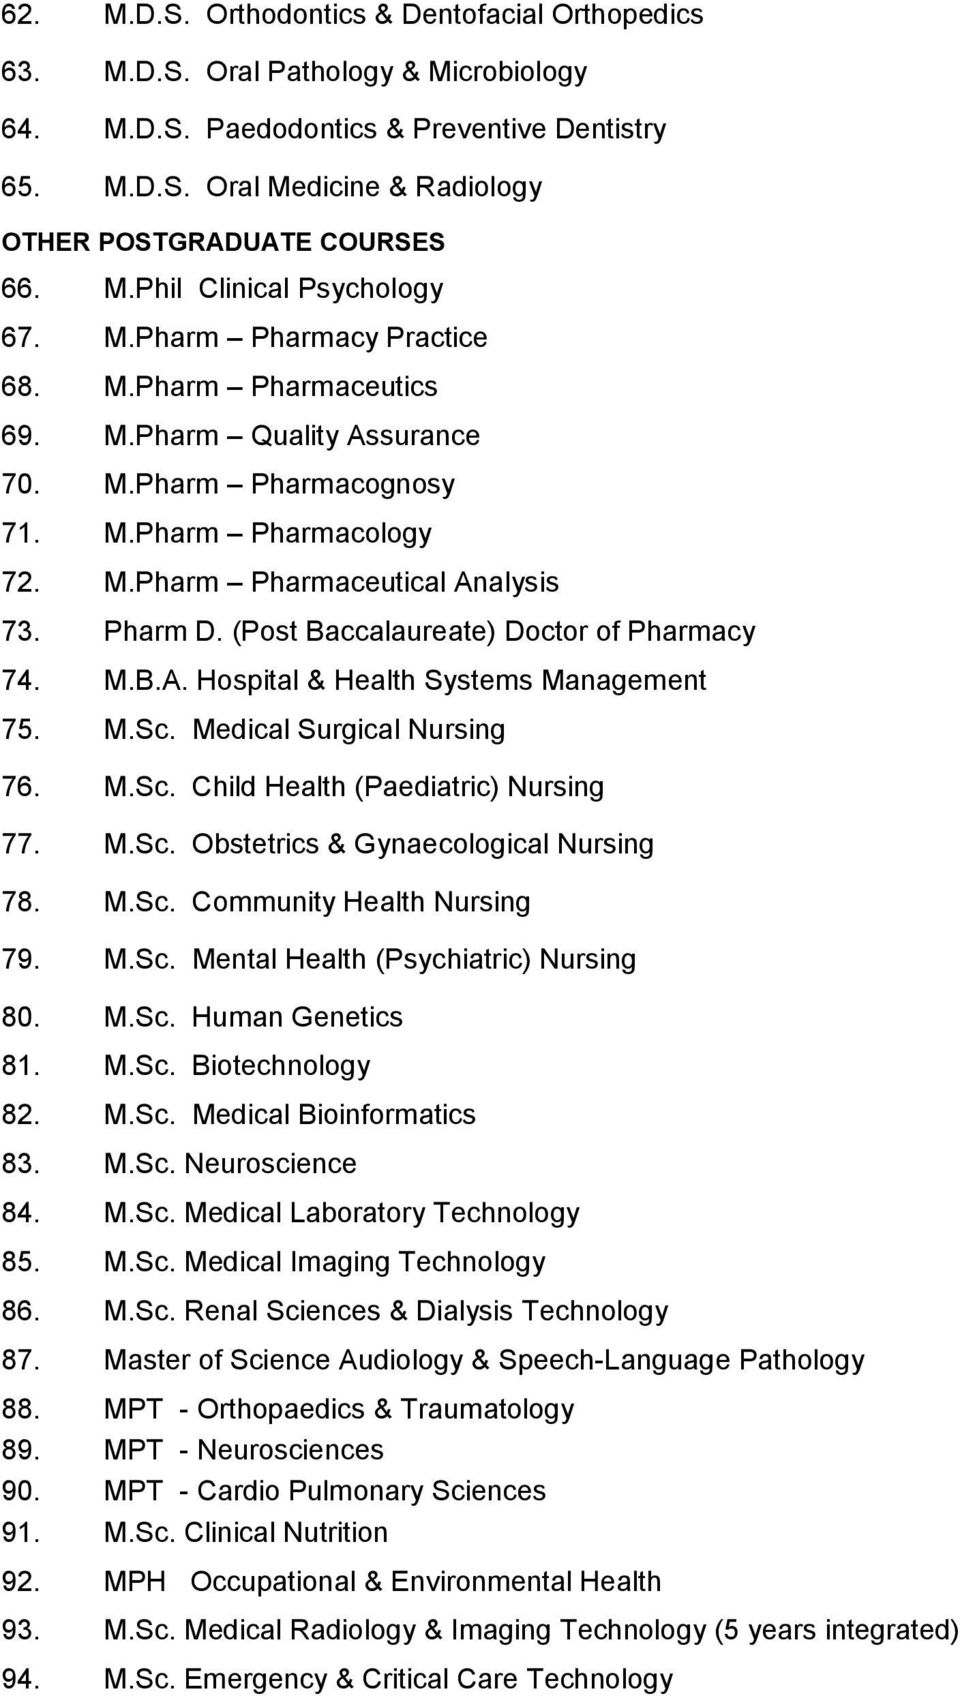 Pharm D. (Post Baccalaureate) Doctor of Pharmacy 74. M.B.A. Hospital & Health Systems Management 75. M.Sc. Medical Surgical Nursing 76. M.Sc. Child Health (Paediatric) Nursing 77. M.Sc. Obstetrics & Gynaecological Nursing 78.